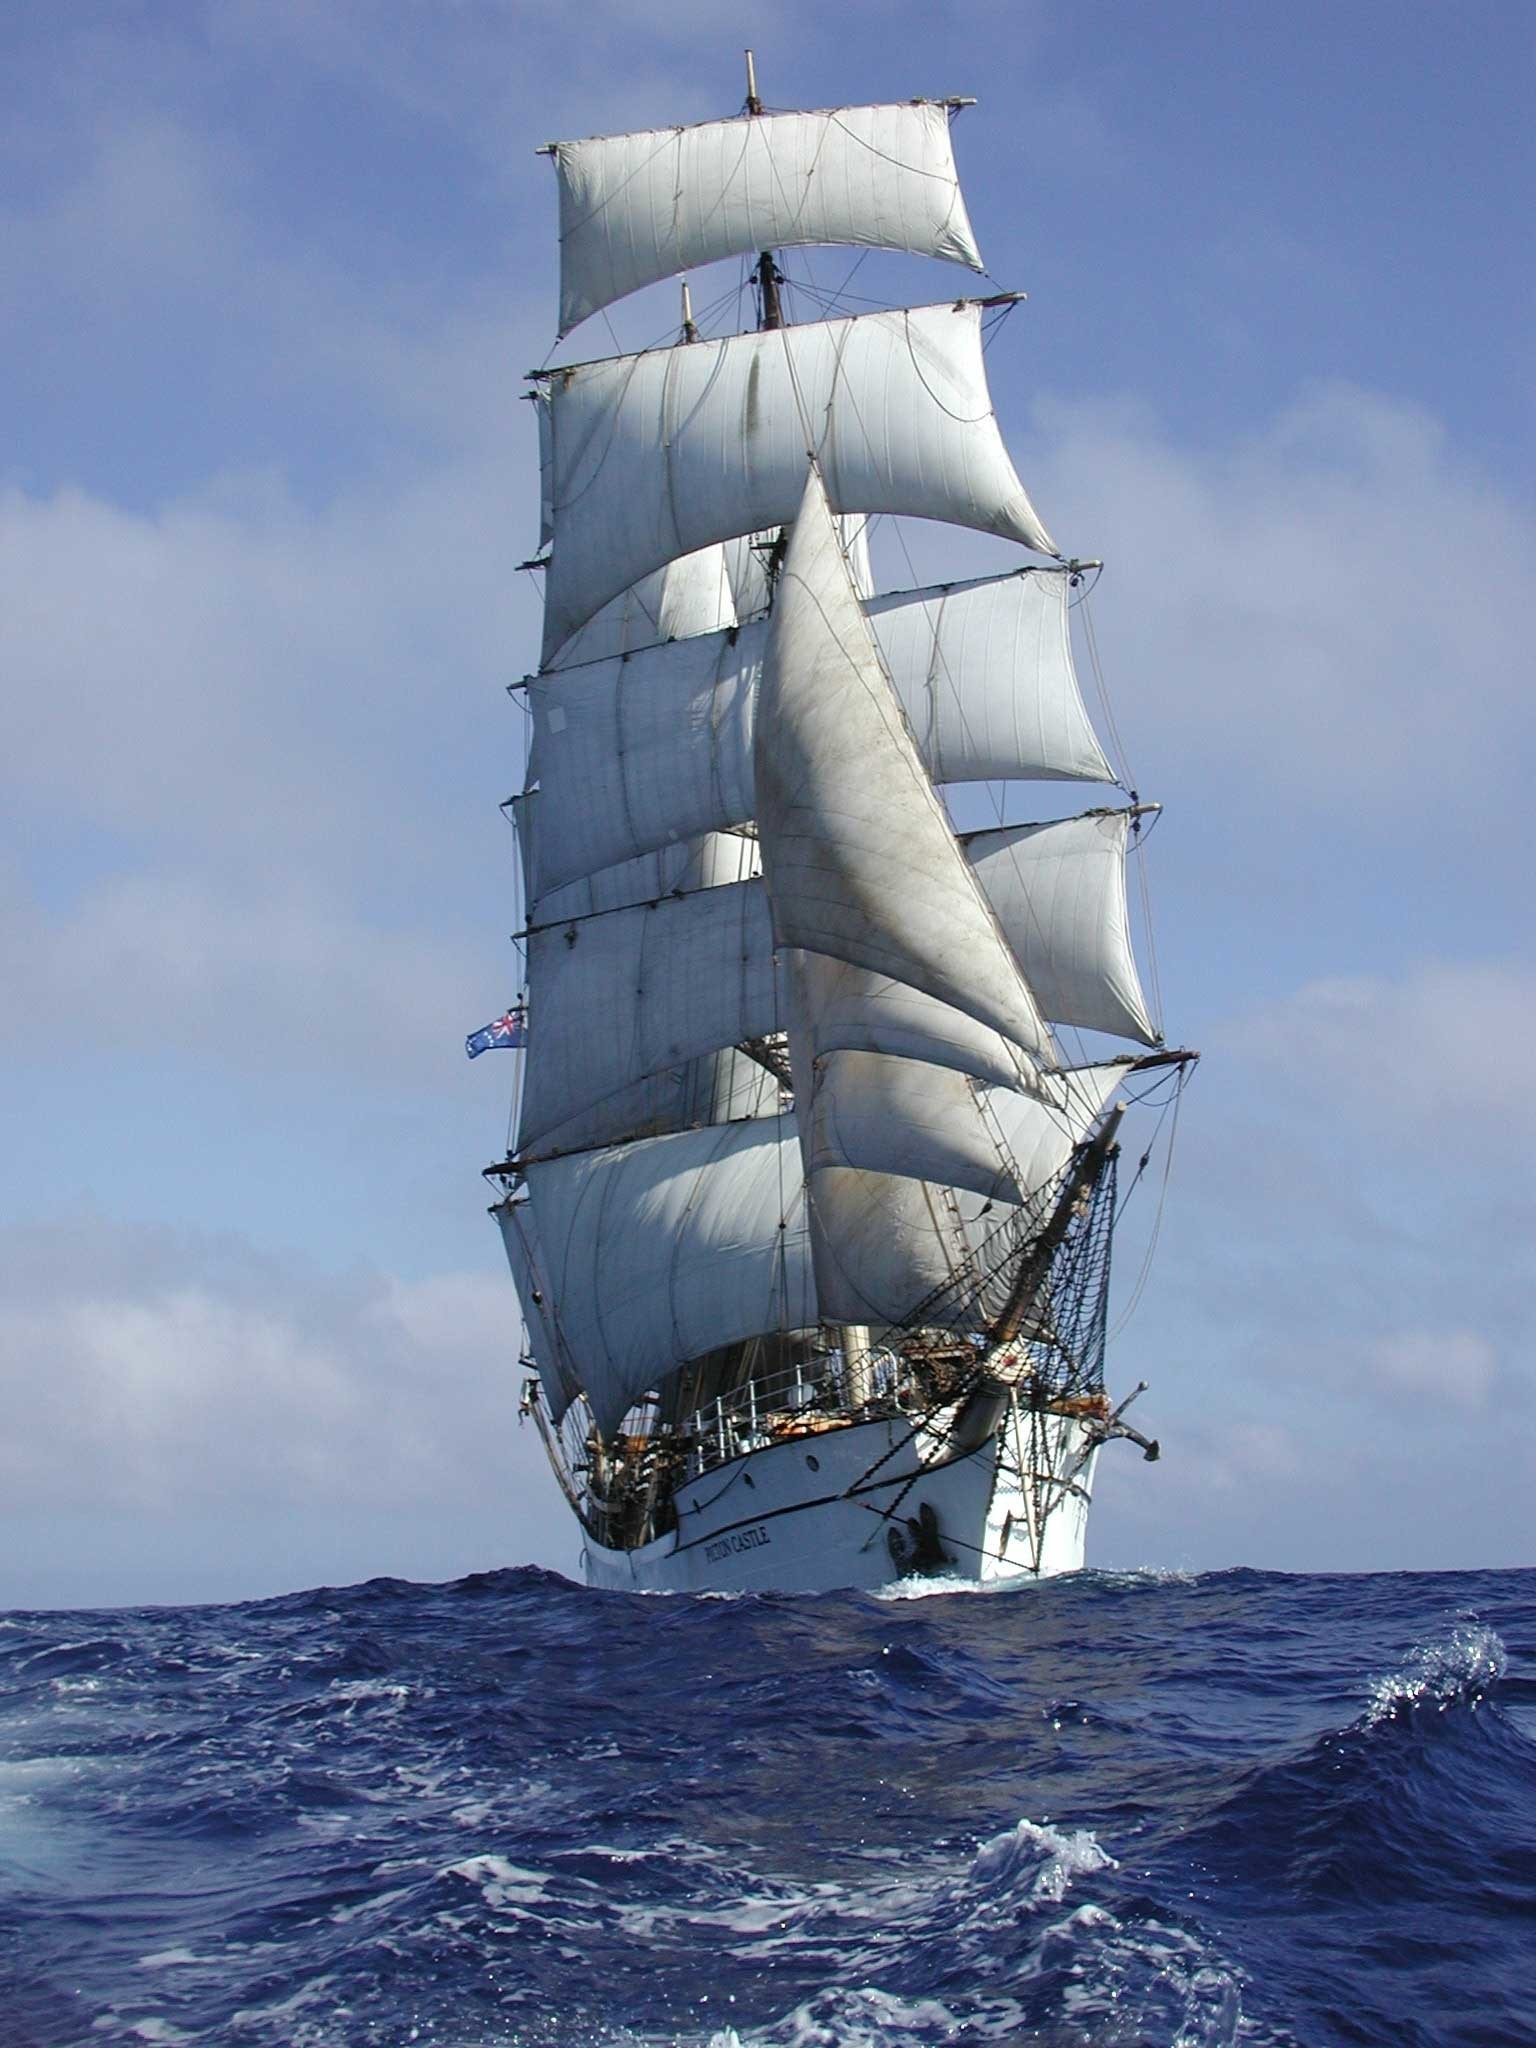 42 best Tall Ships images on Pinterest | Tall ships, Sailing ships and Boats